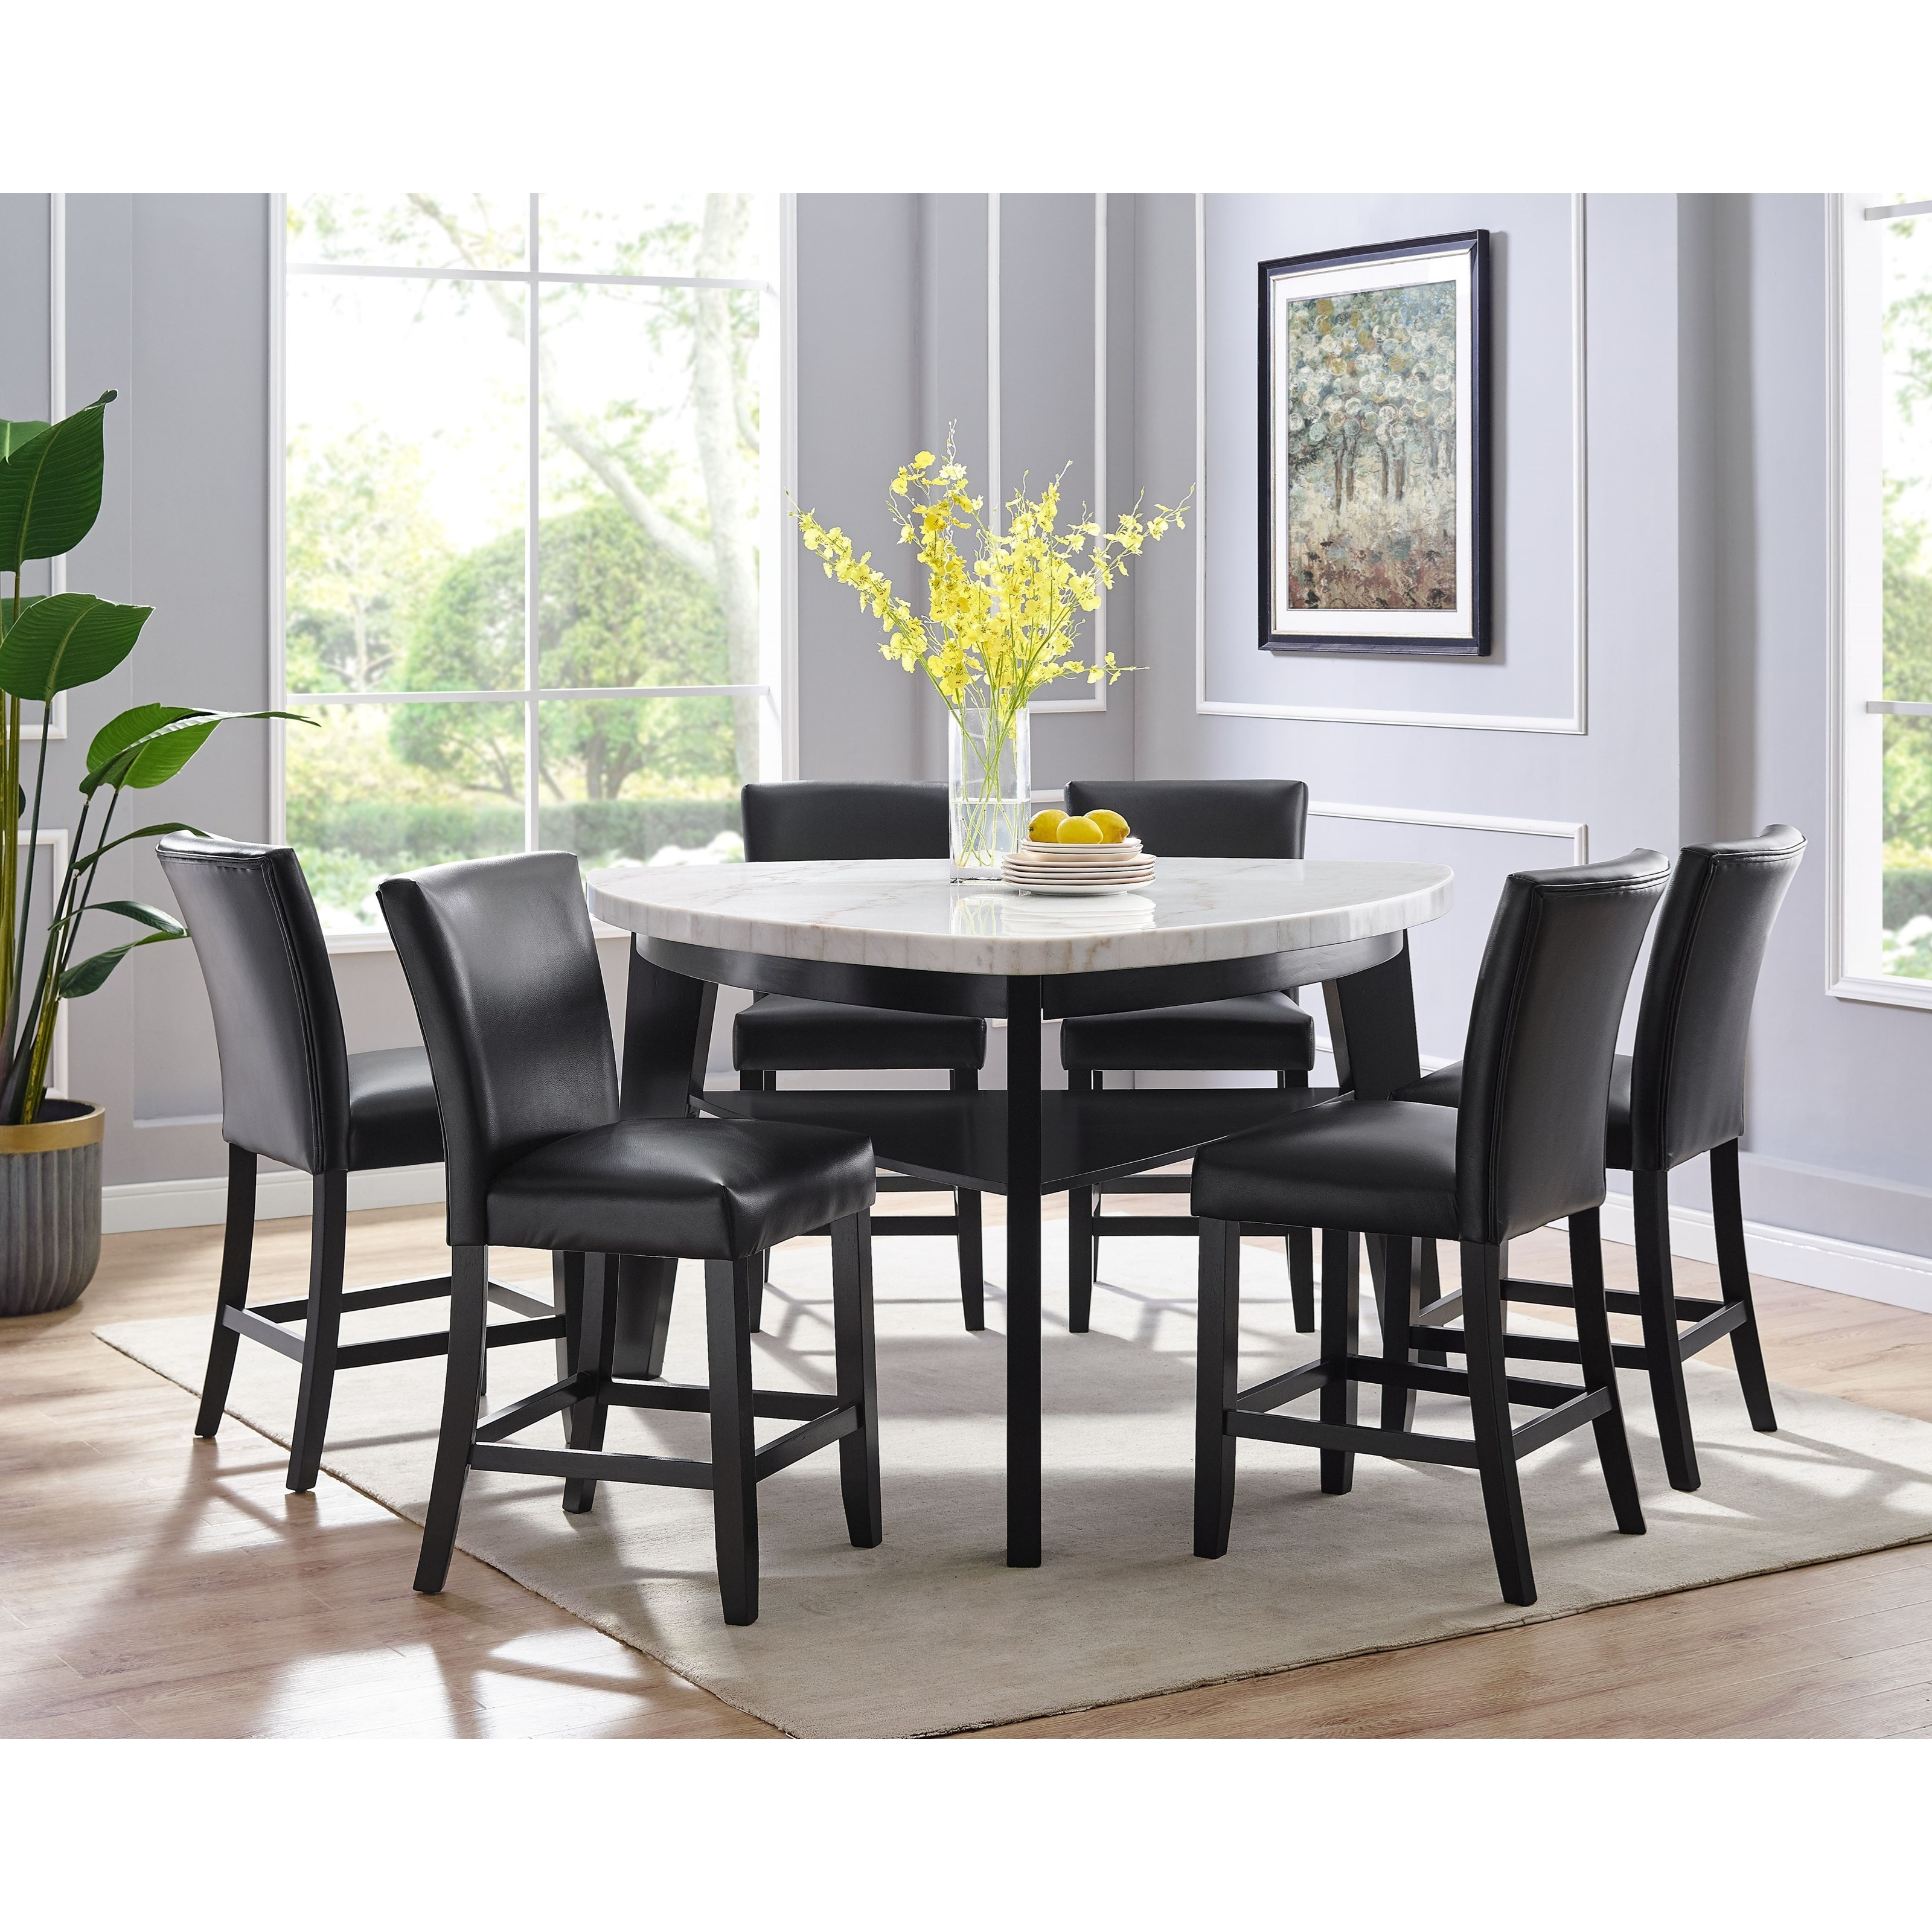 Carrara 7-Piece Dining Set by Steve Silver at Northeast Factory Direct